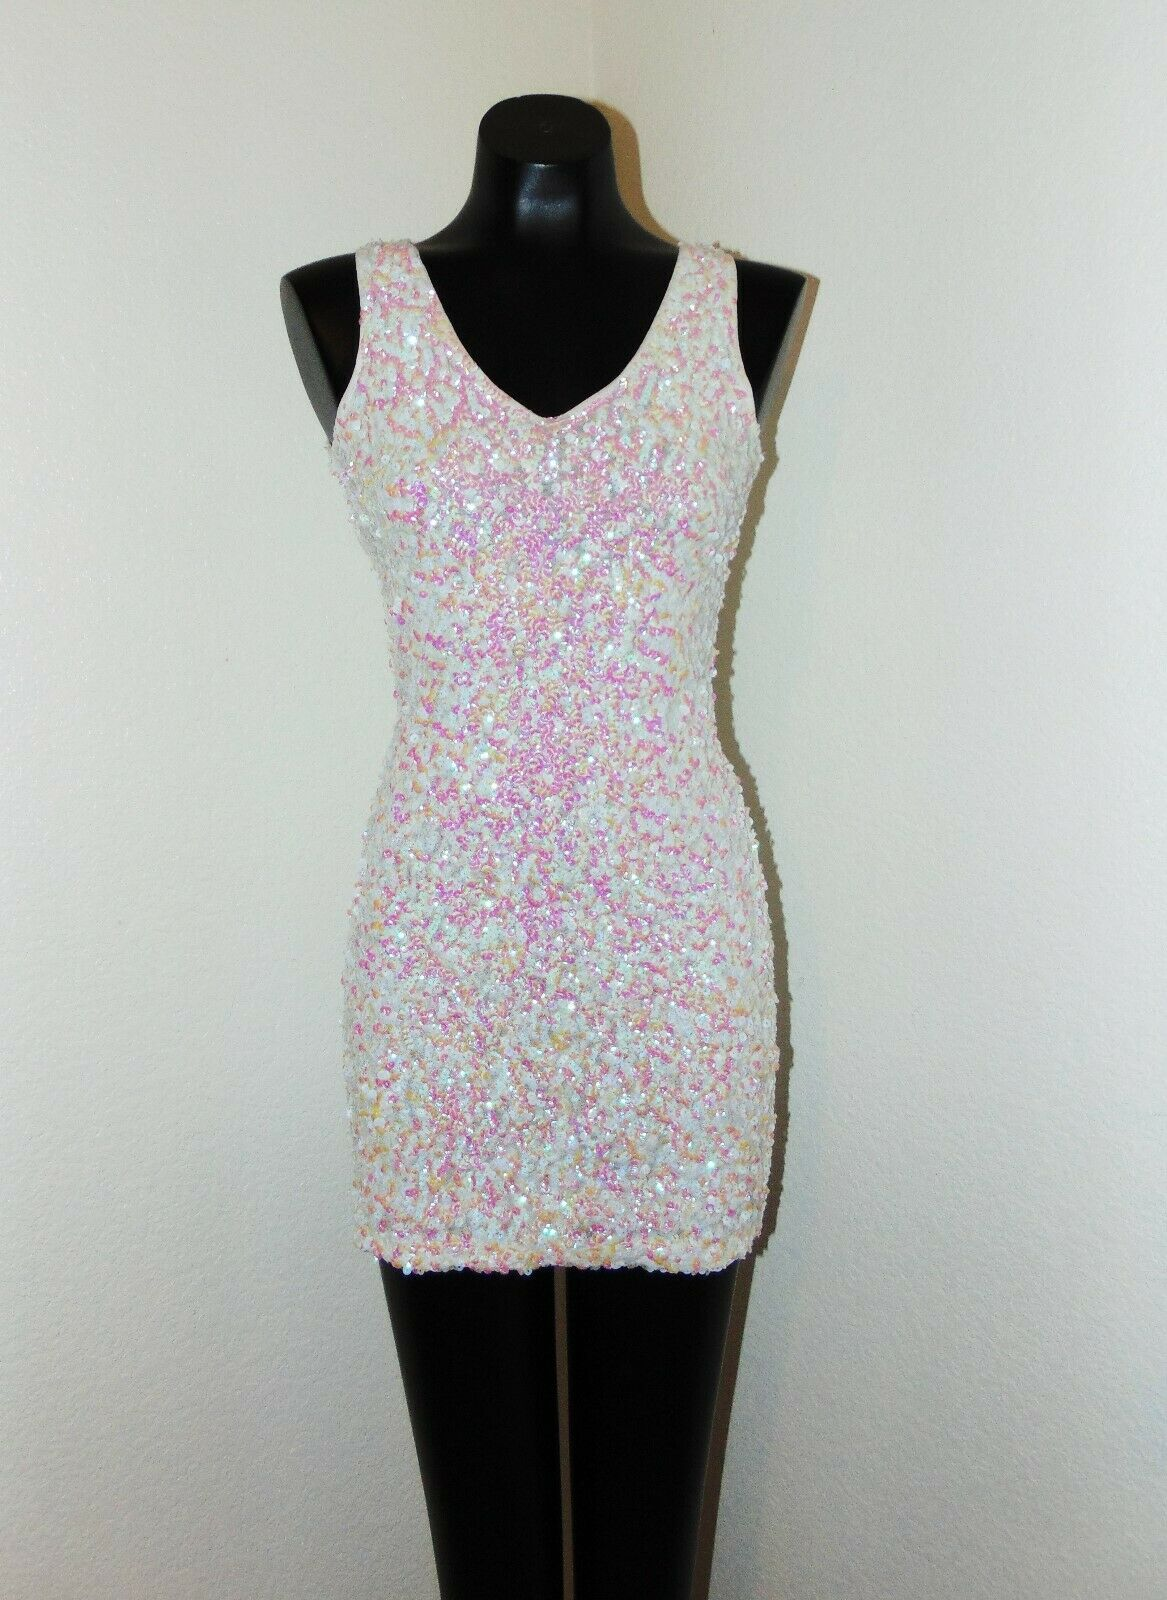 NWOT White Dress with White & Pink Sequins in sz Small